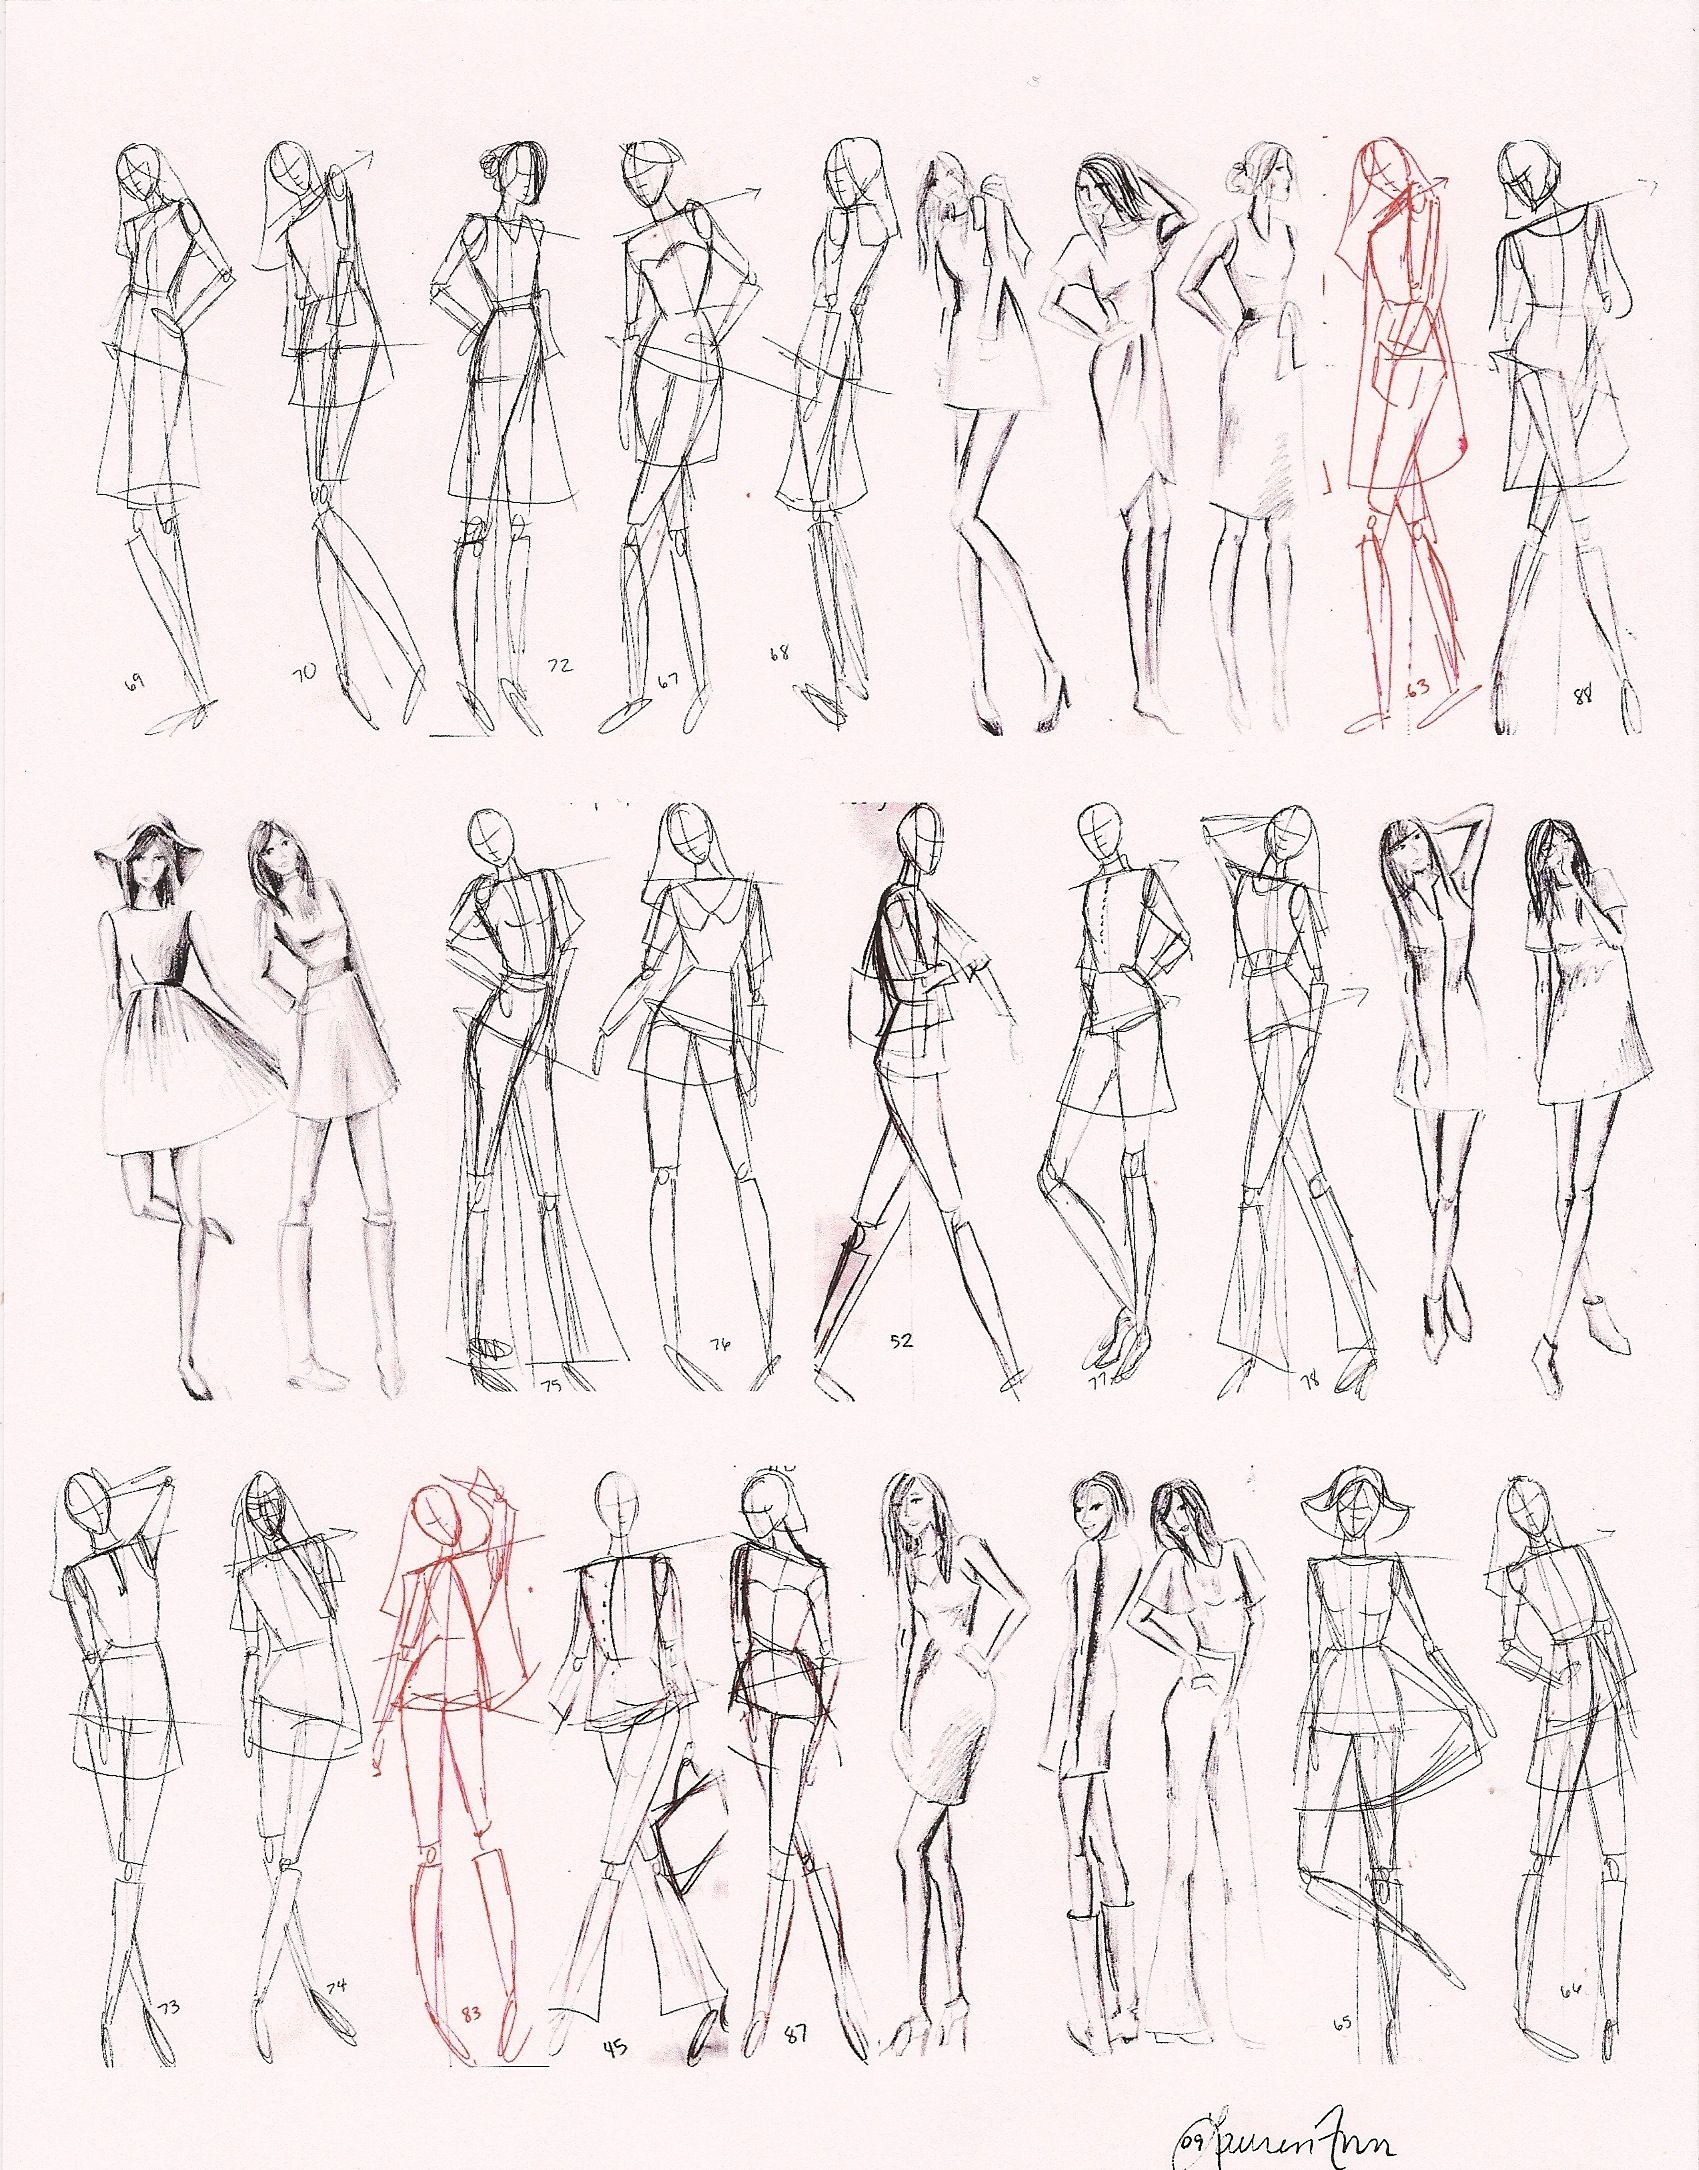 Images For How To Draw Fashion Figures In Simple Steps Fashion Figure Drawing Illustration Fashion Design Fashion Figures